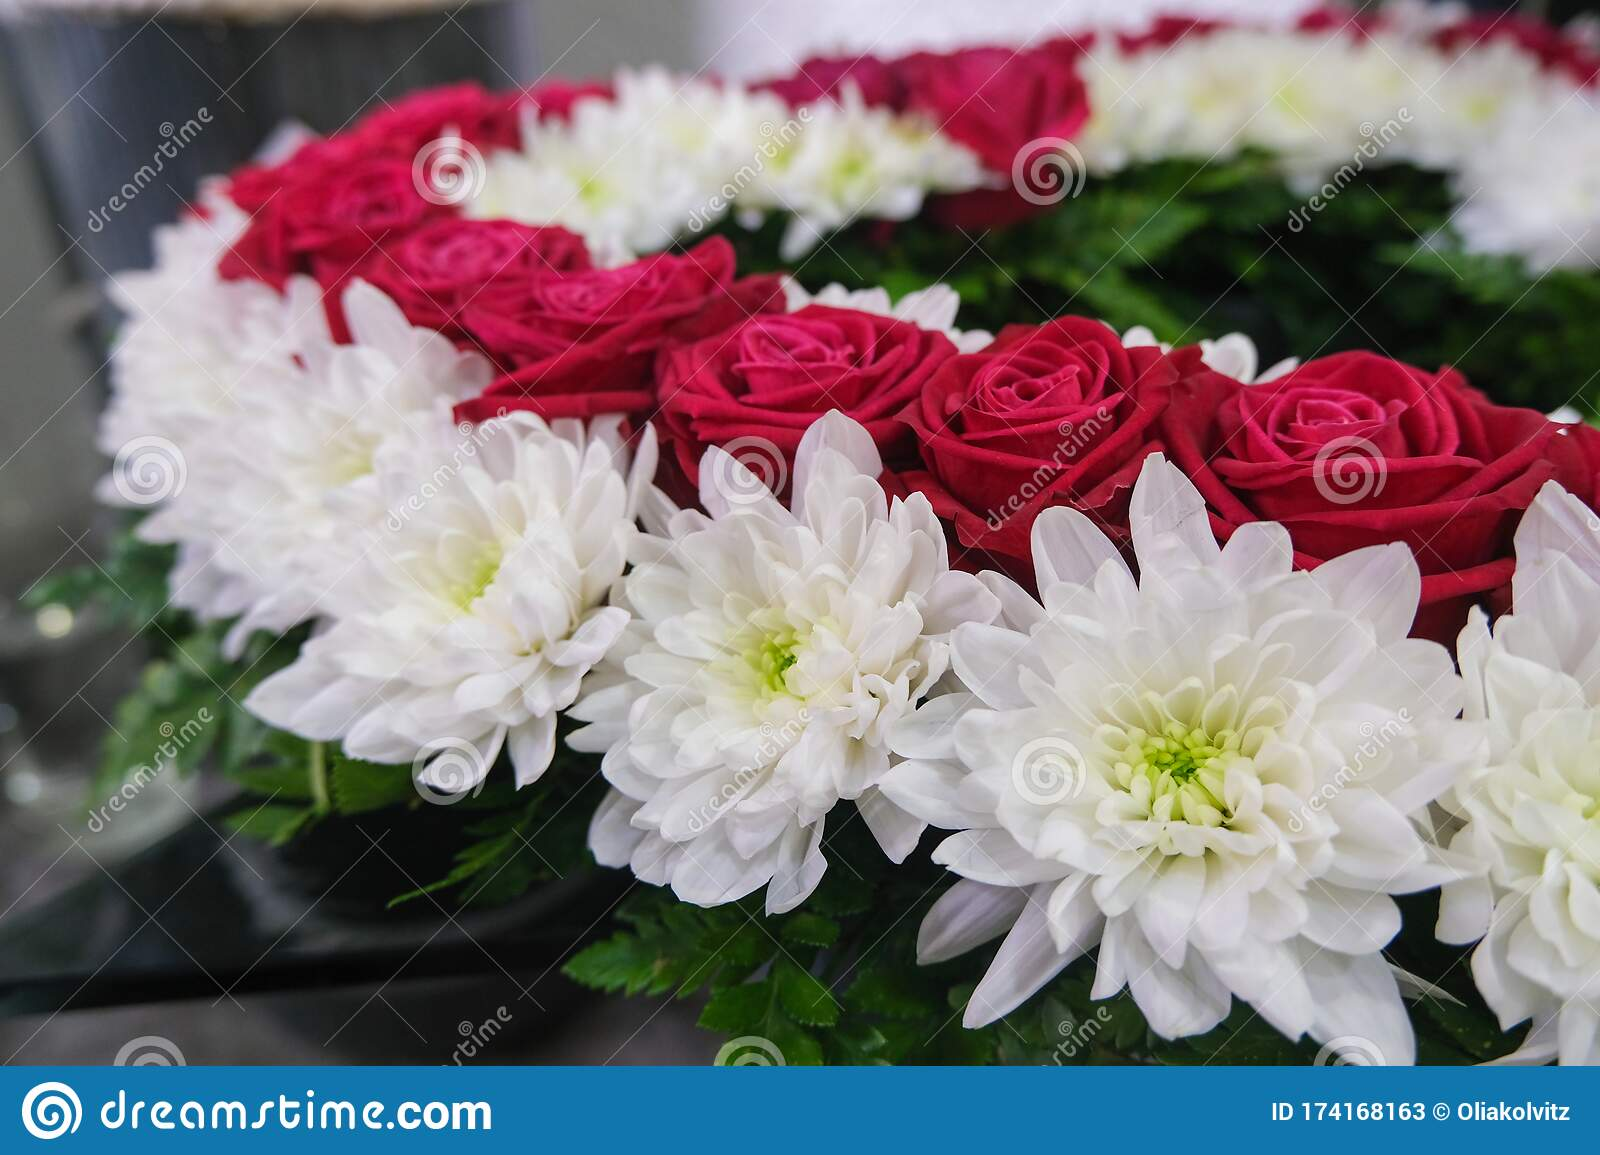 Roses And Chrysanthemum Flowers Arrangement White And Red Roses Small Cute Flowers Stock Image Image Of Gift Florist 174168163